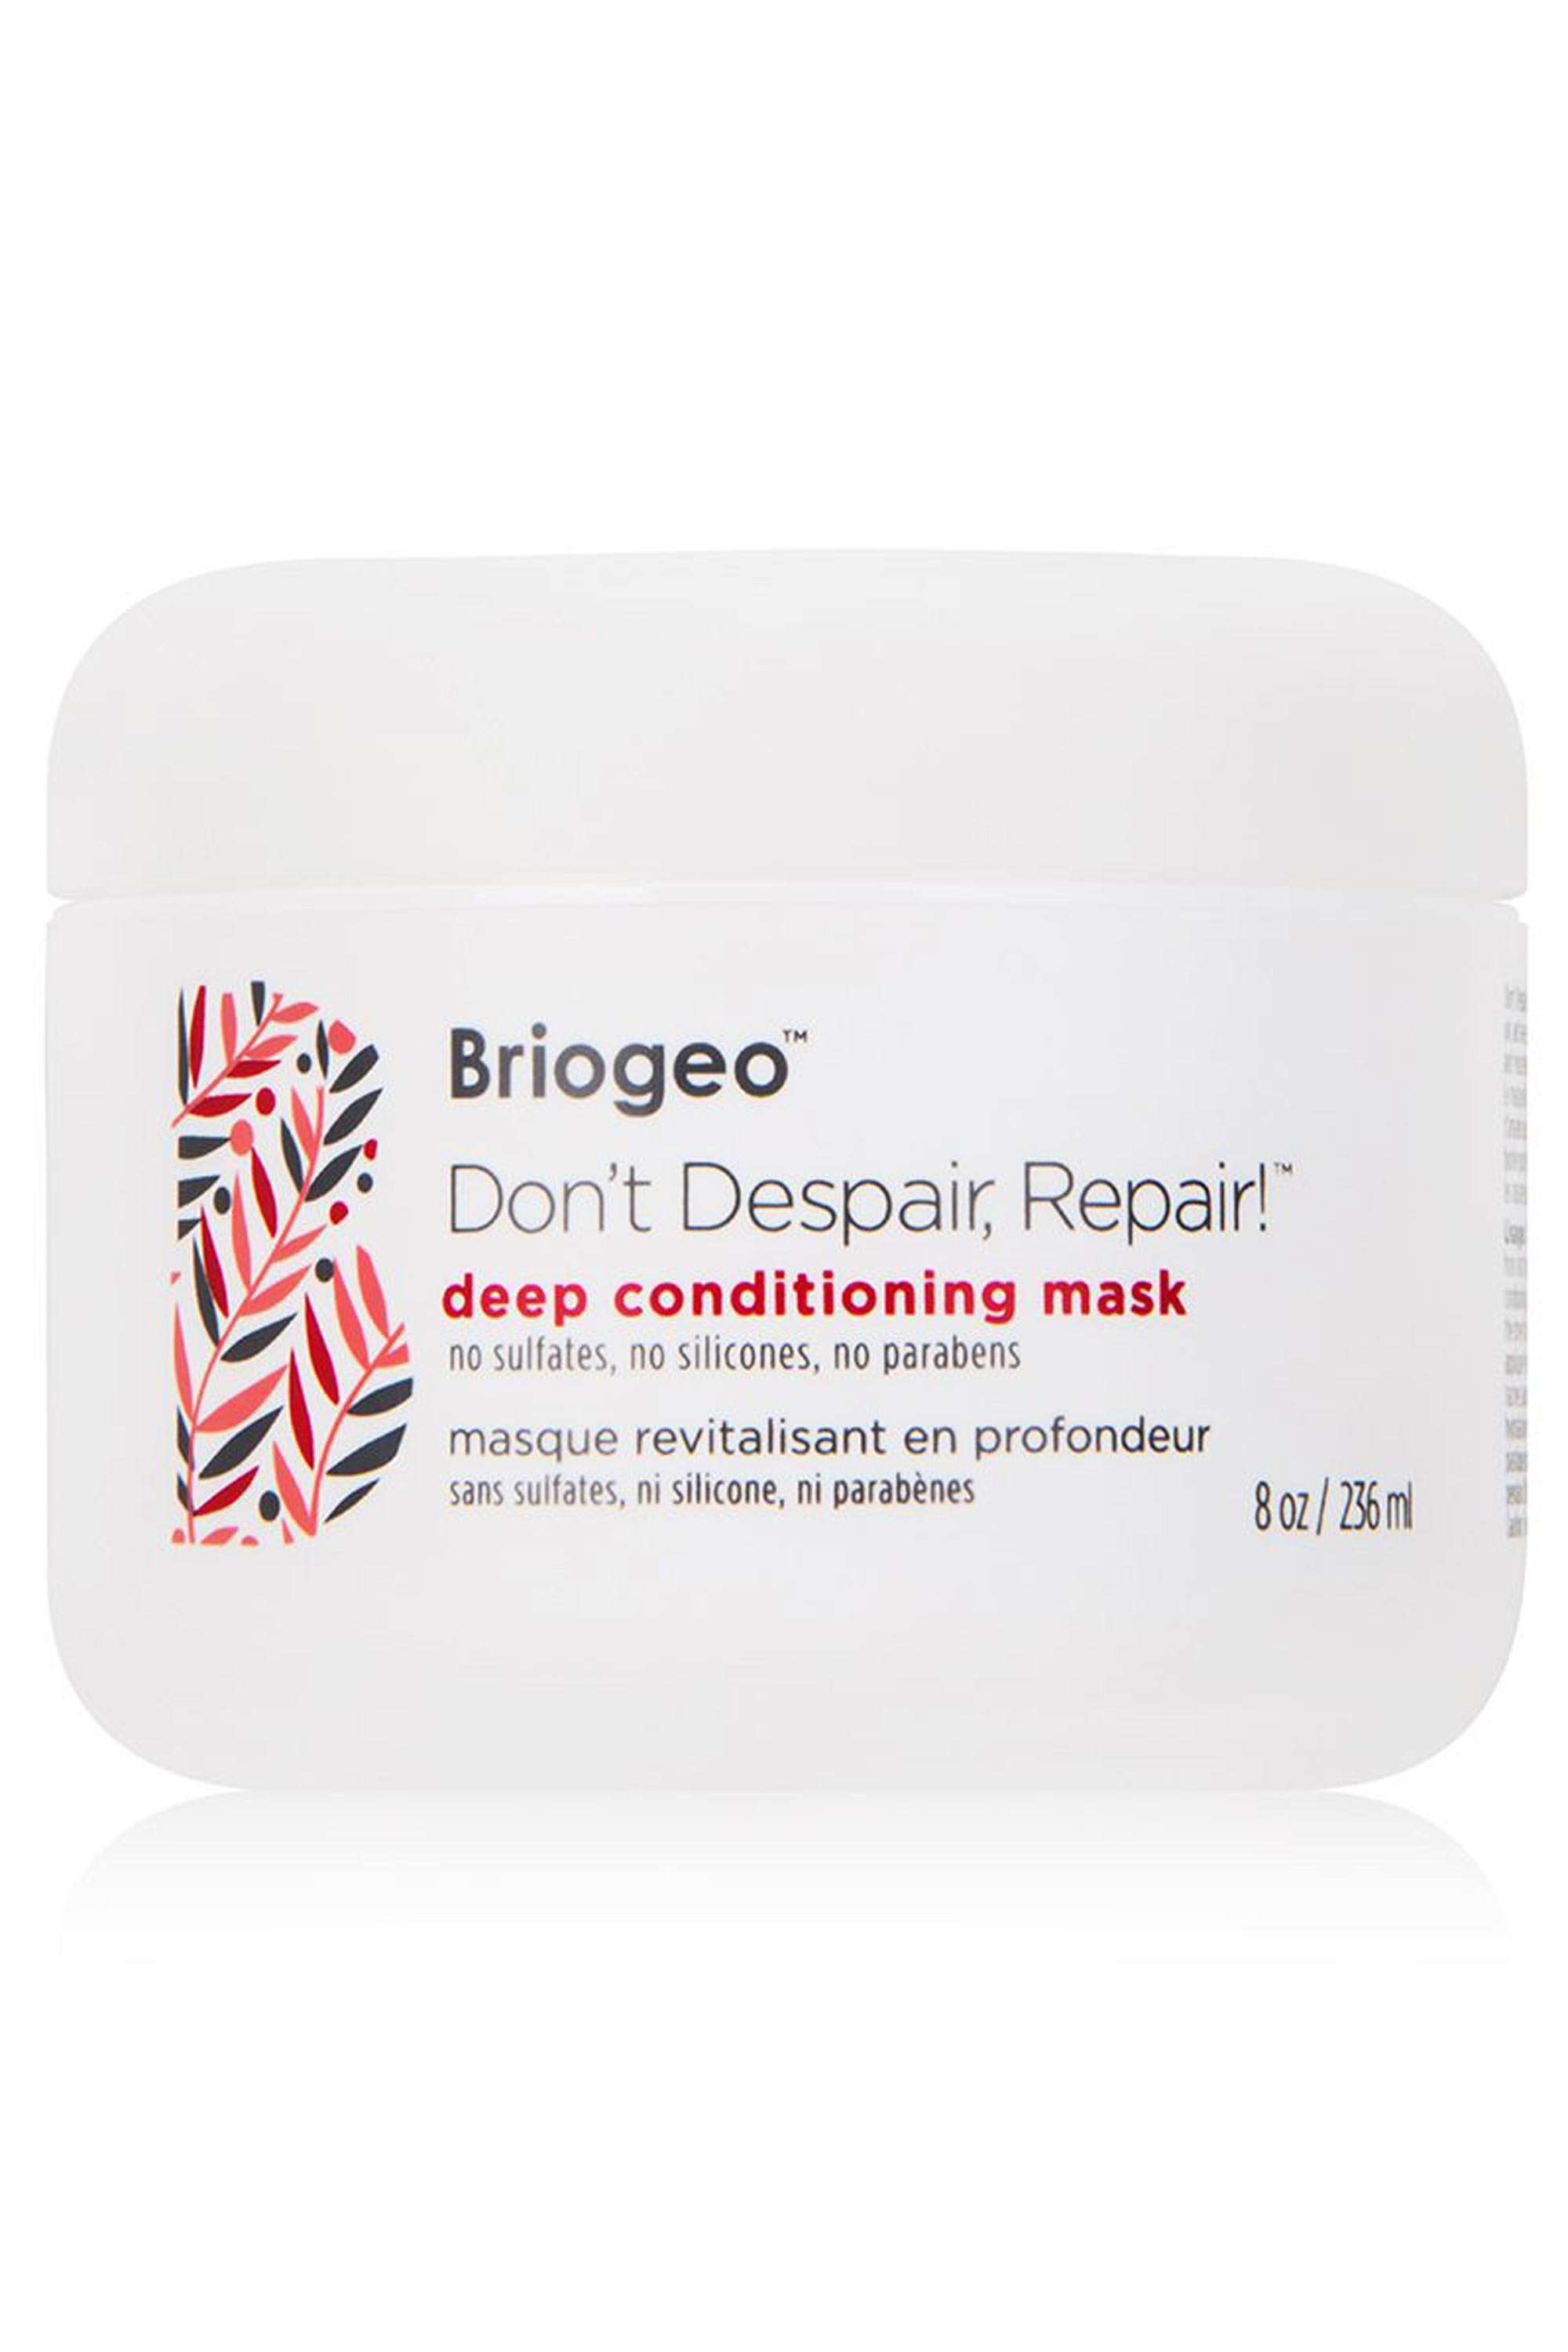 Briogeo Don't Despair, Repair!™ Deep Conditioning Mask